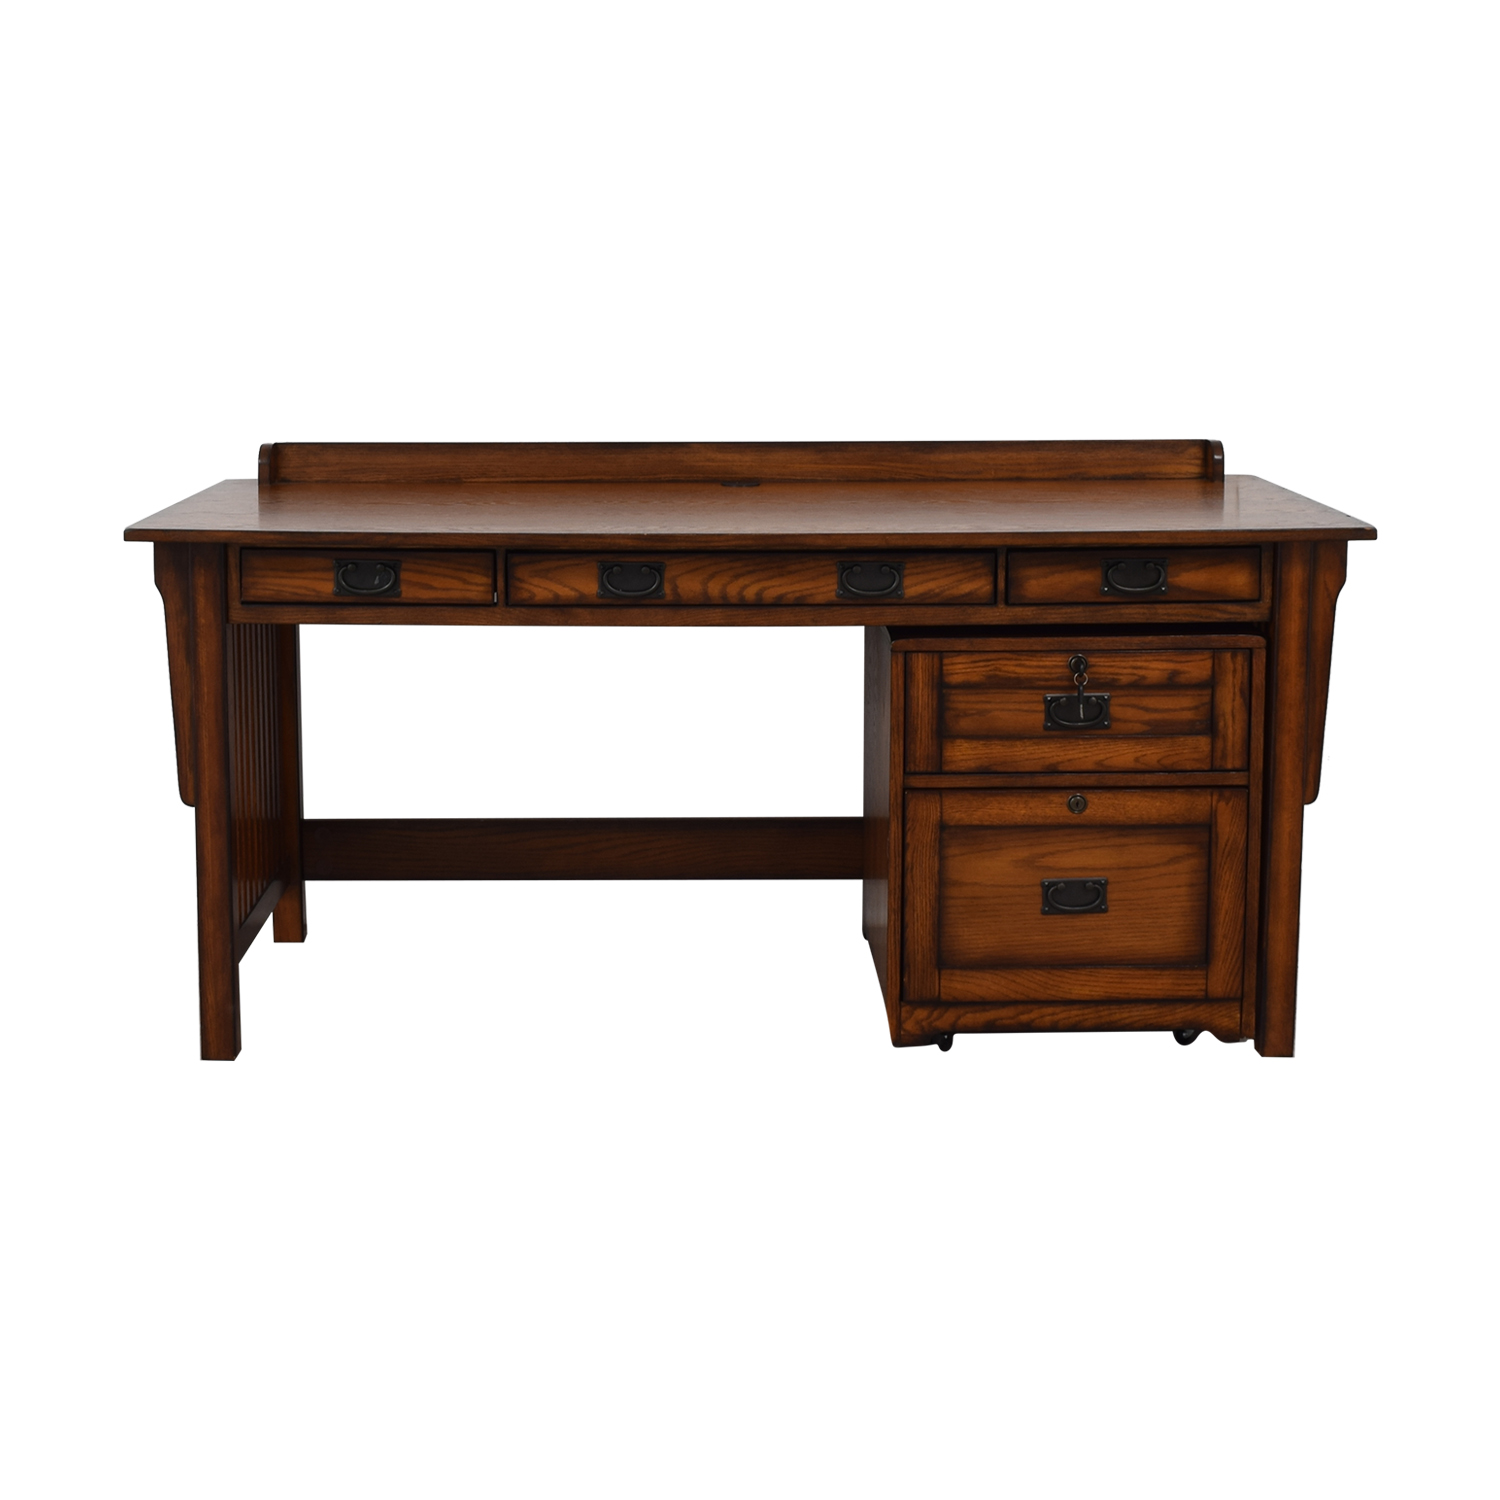 Desk With File Cabinet 90 Off Hammary Furniture Hammary Furniture Wood Desk And File